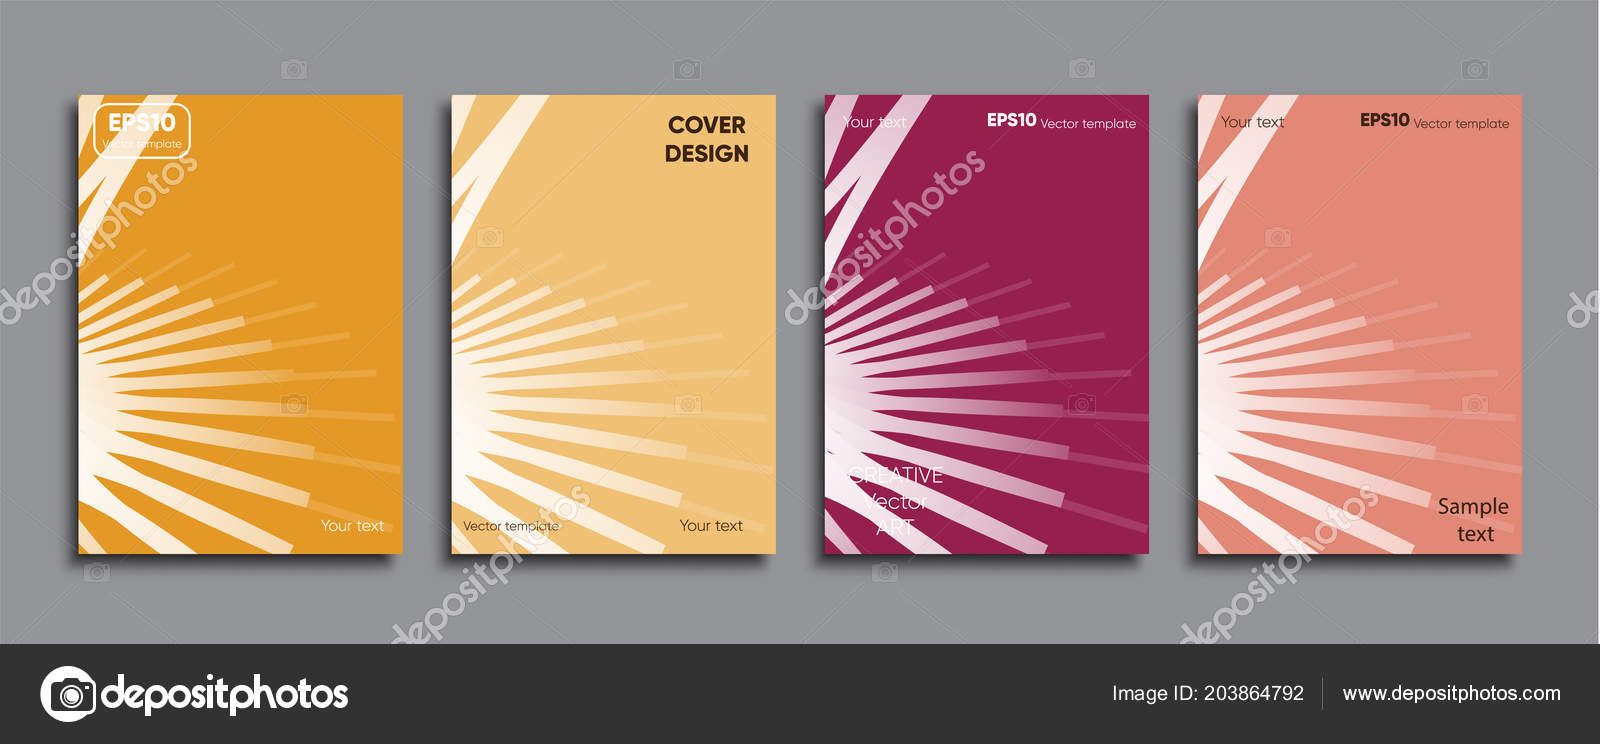 creative colored cover cover design stock vector batyisanyi